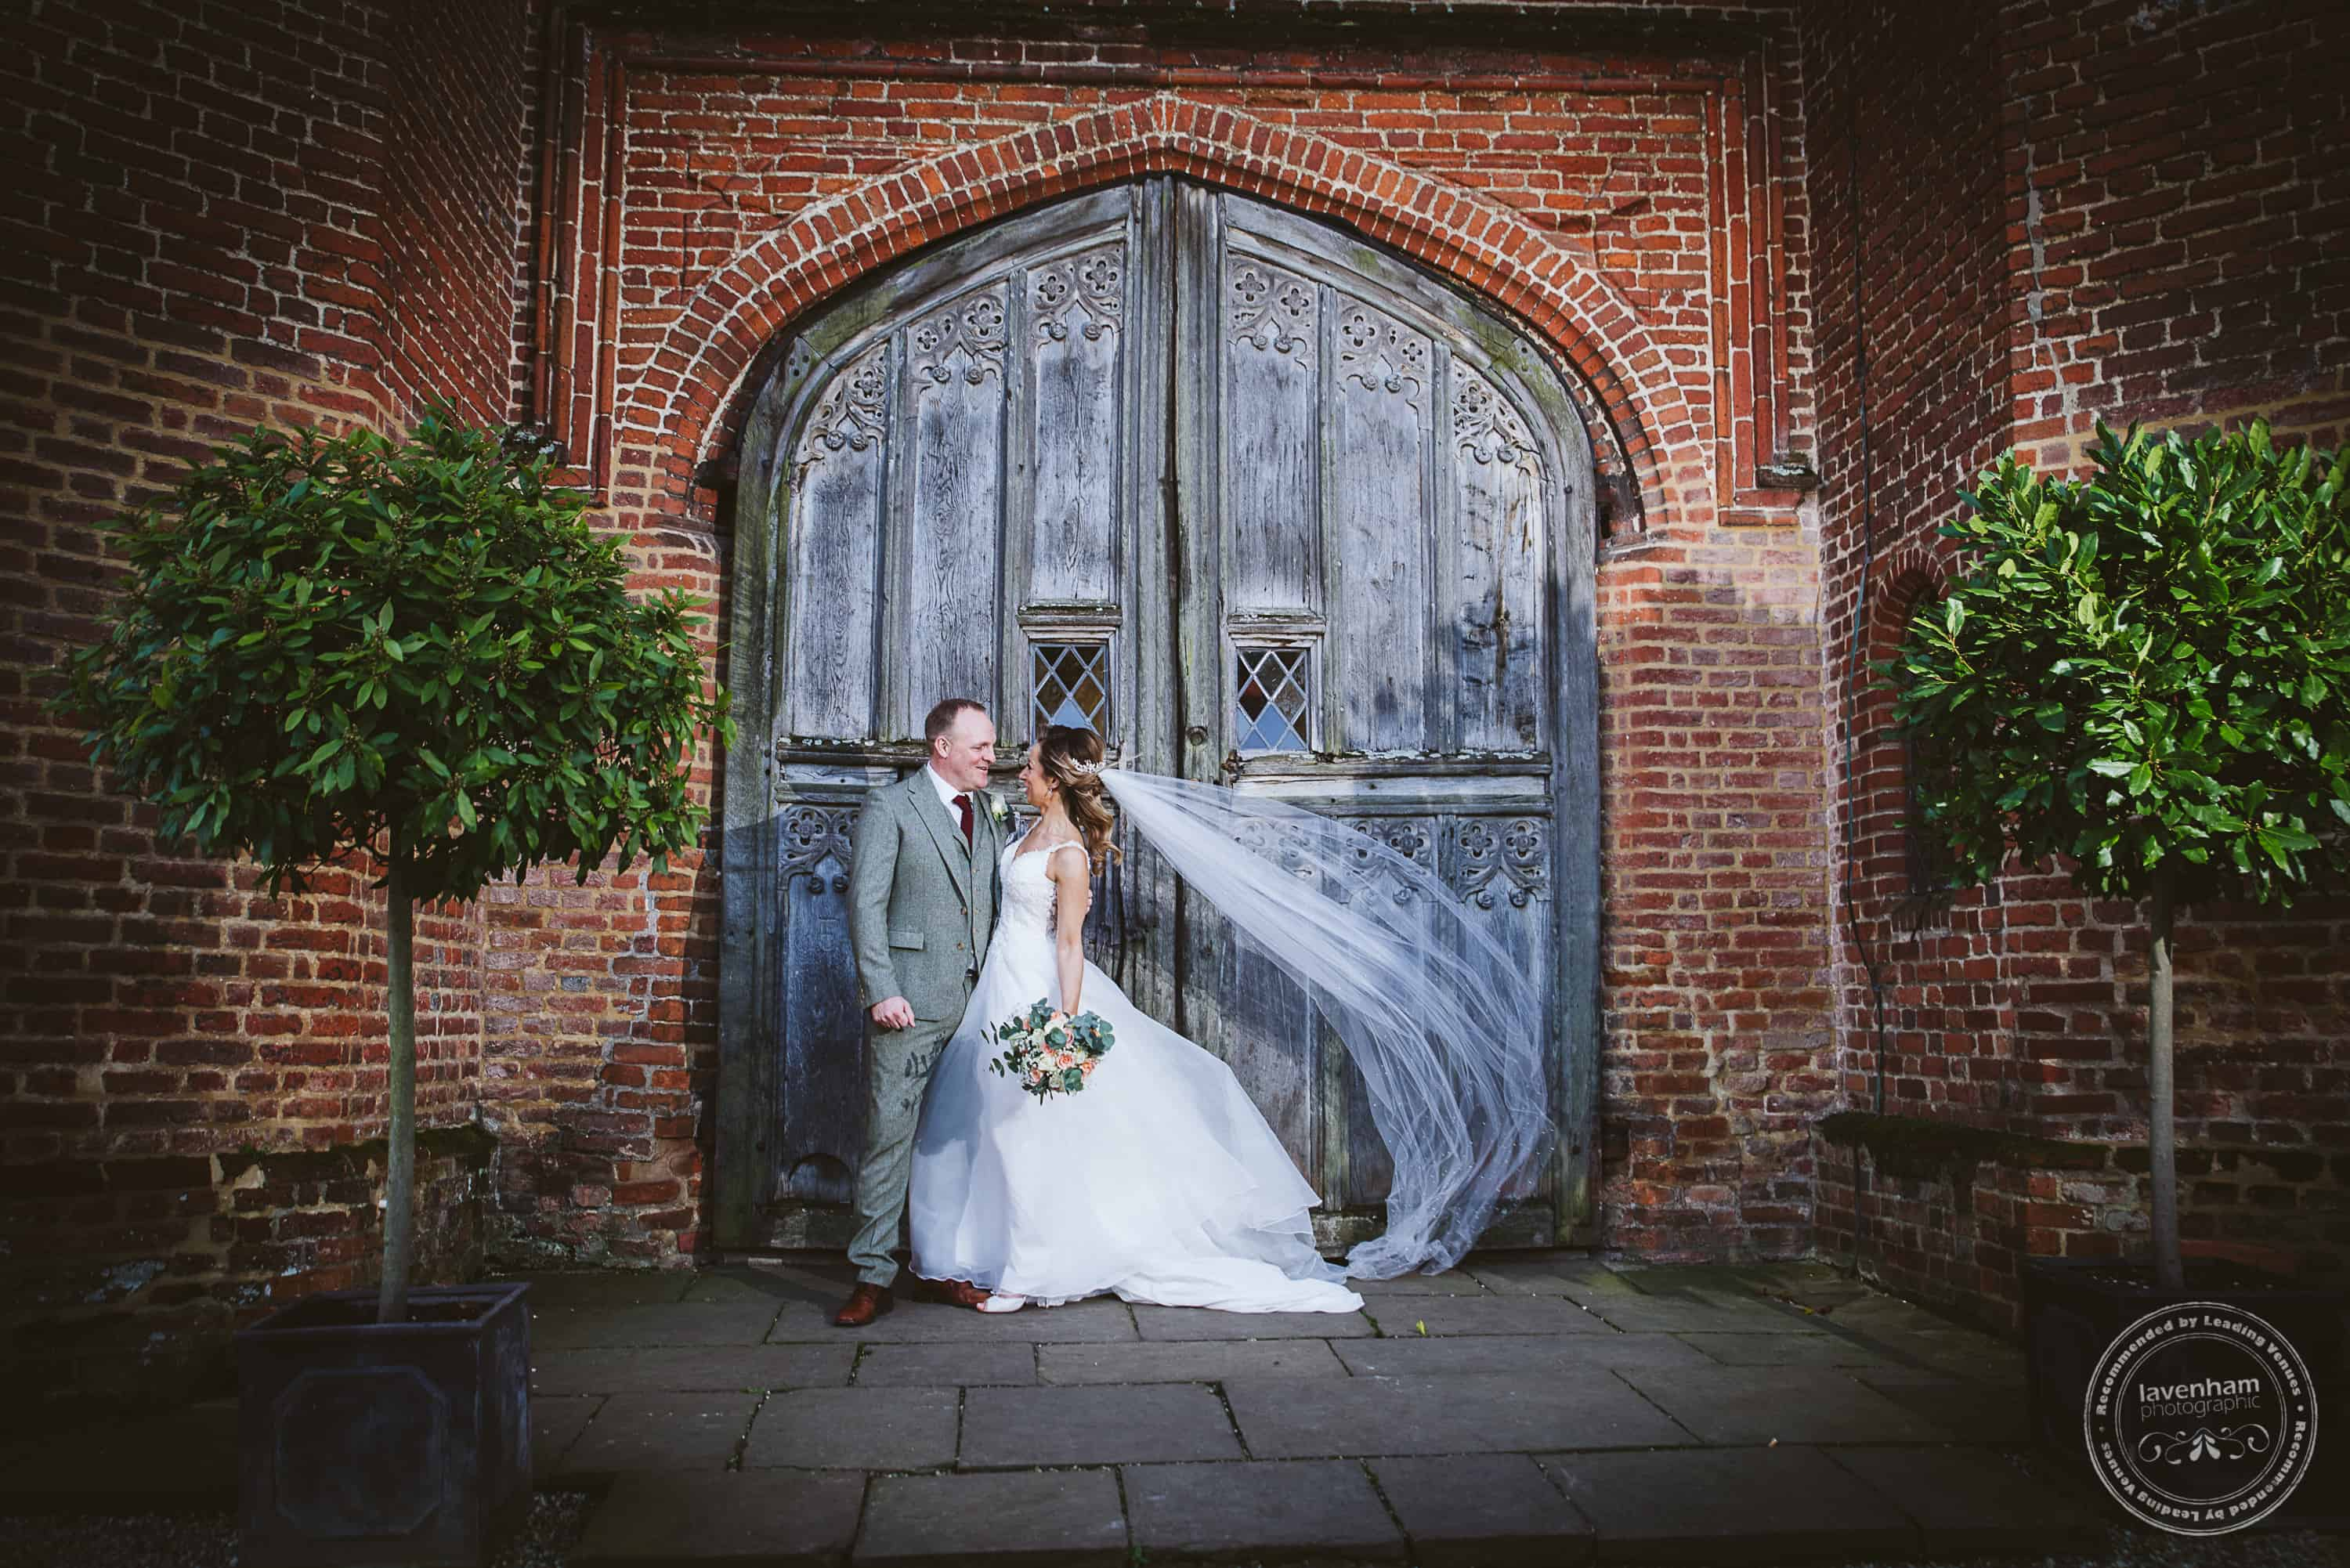 010220 Leez Priory Wedding Photographer 076